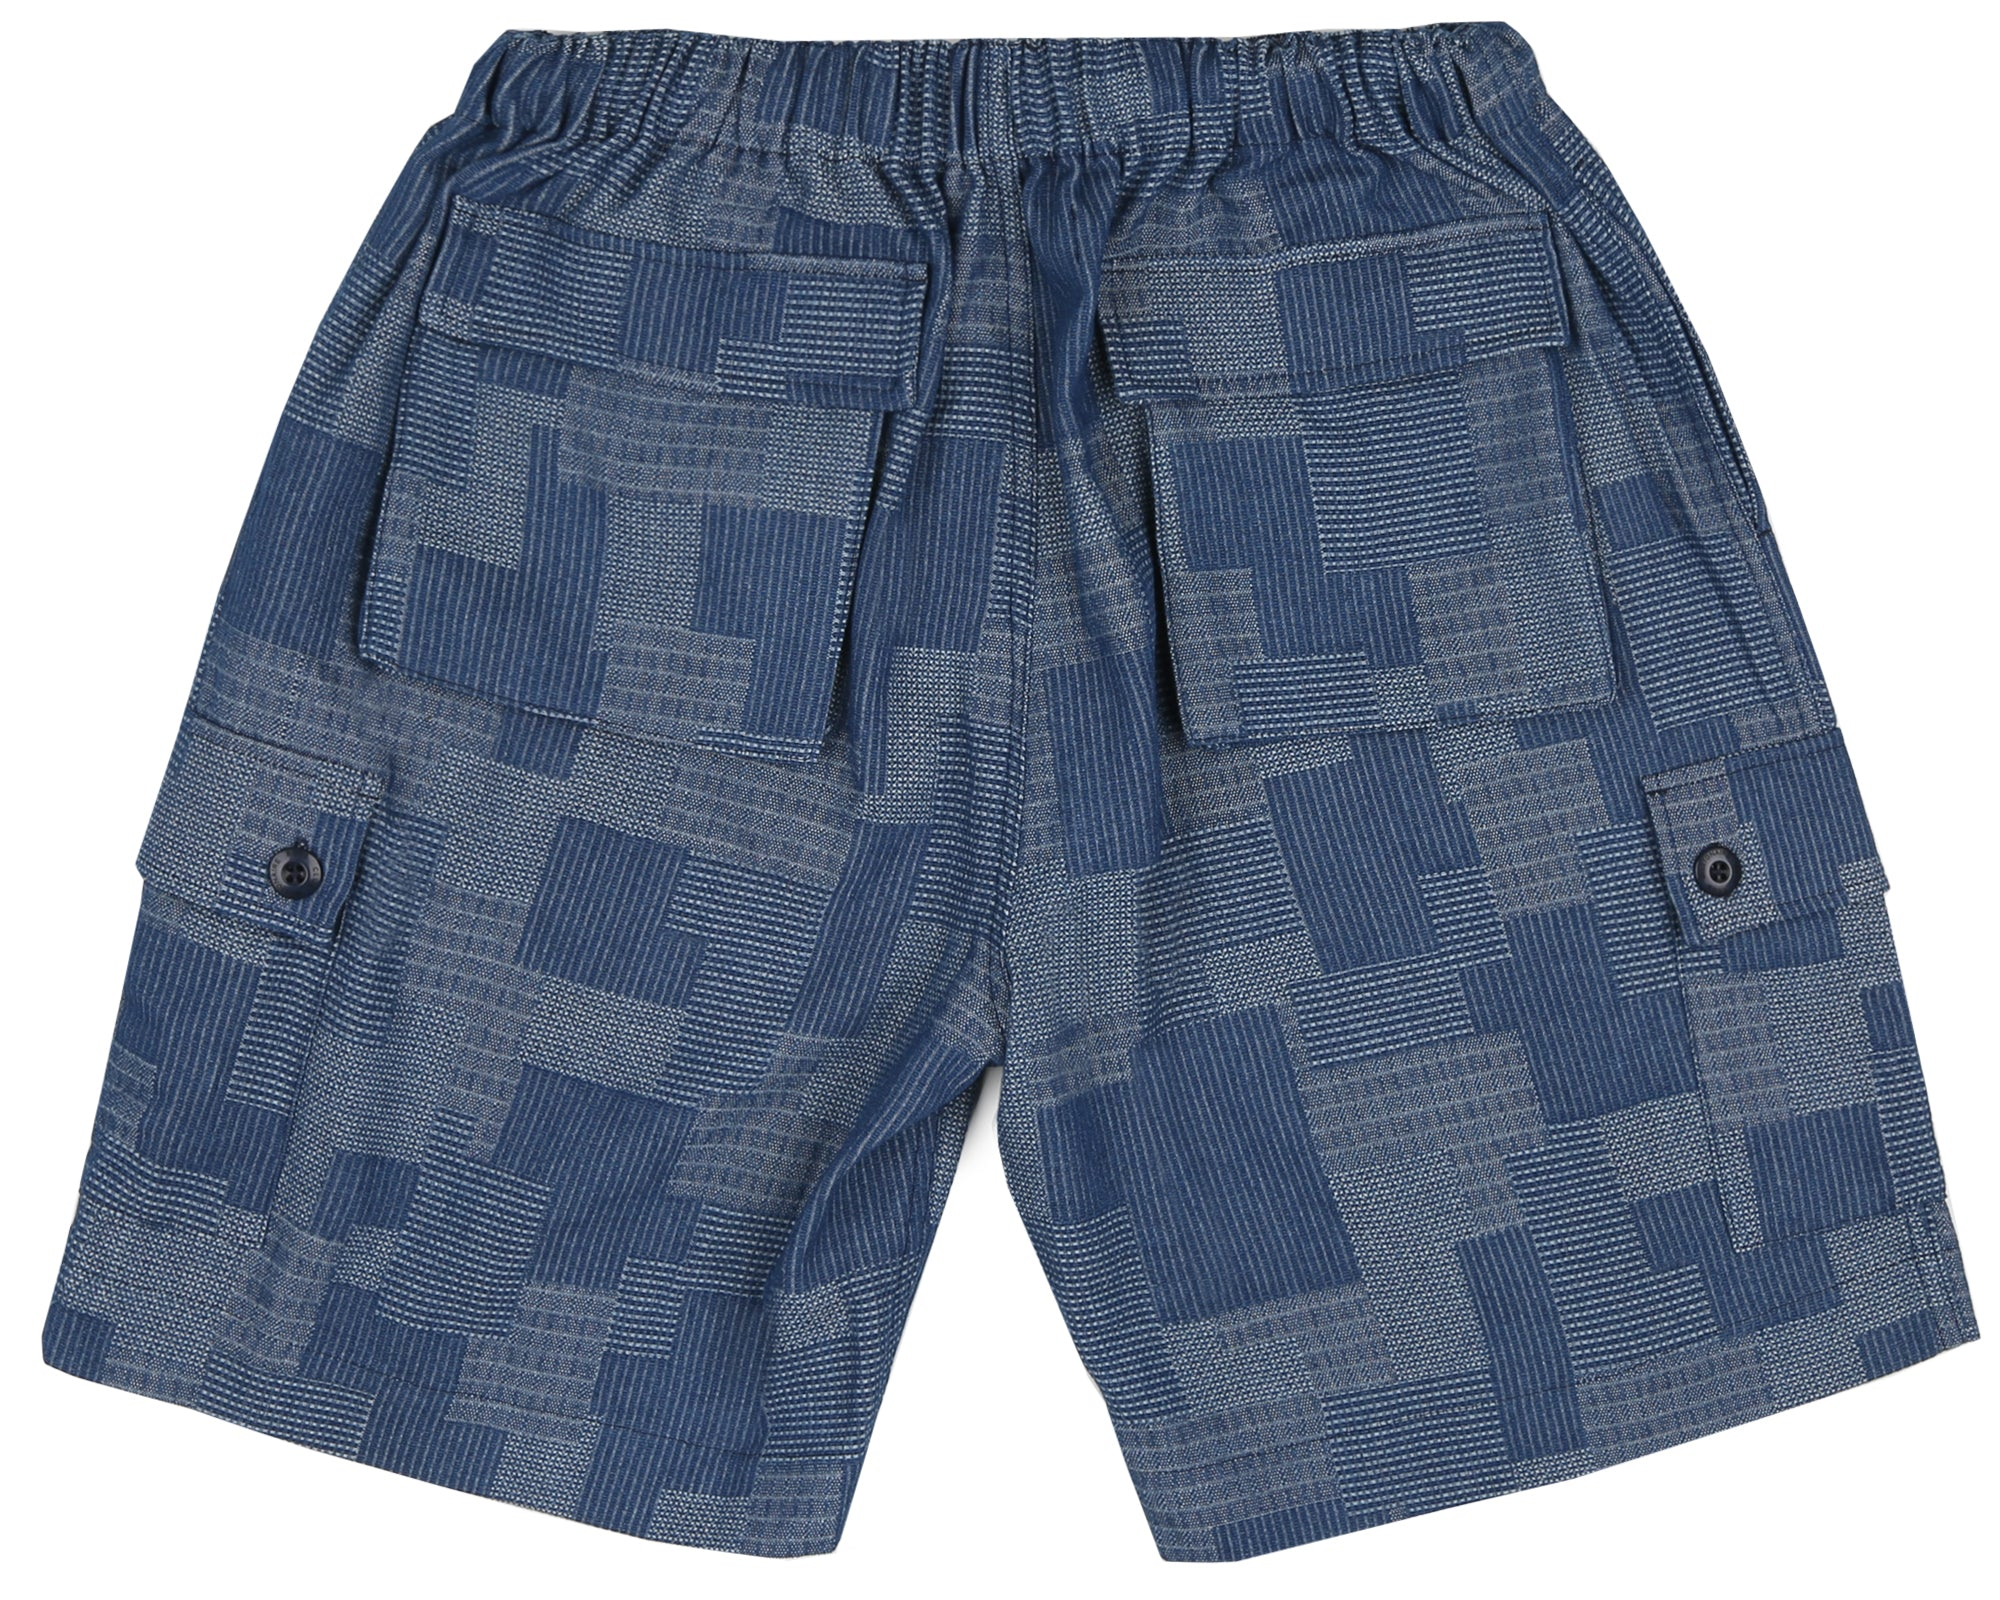 PATCHWORK DENIM SHORT - BLUE